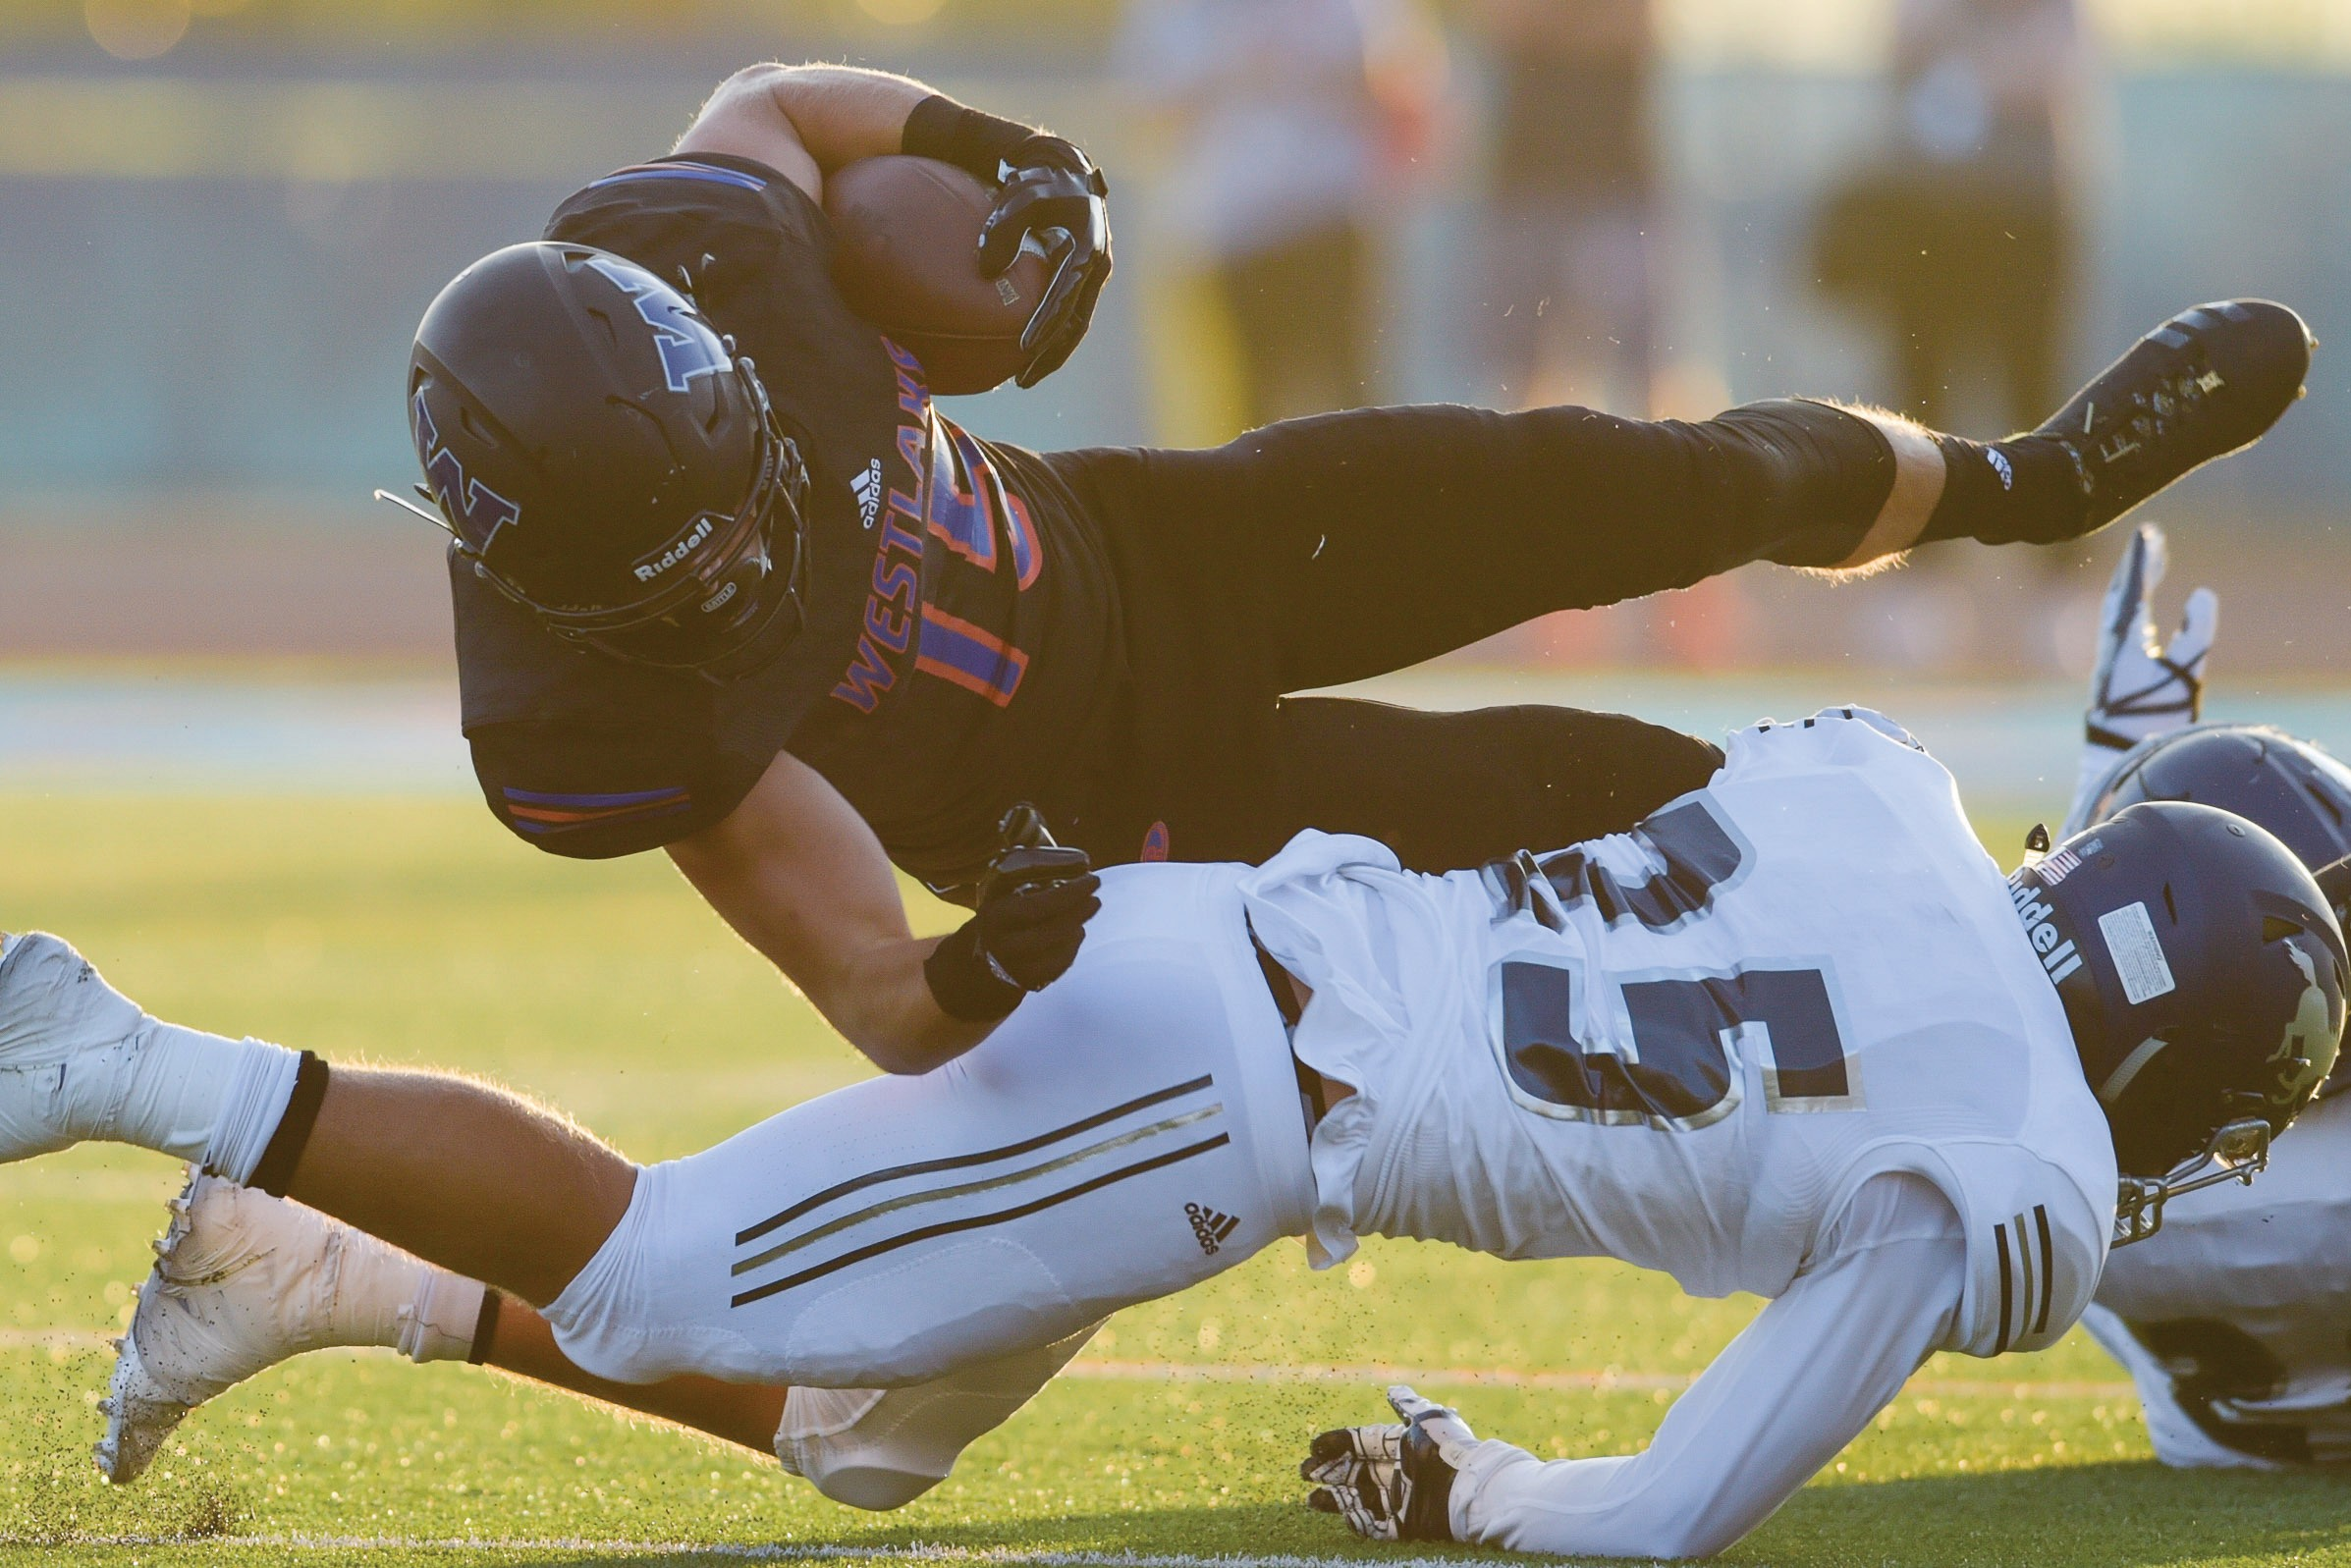 CROSSTOWN TRAFFIC—Westlake High receiver Michael Carner fights for yards against Sierra Canyon on Aug. 25 at home. Carner and the Warriors play at Newbury Park on Friday in a Conejo Valley clash. MICHAEL COONS/Acorn Newspapers